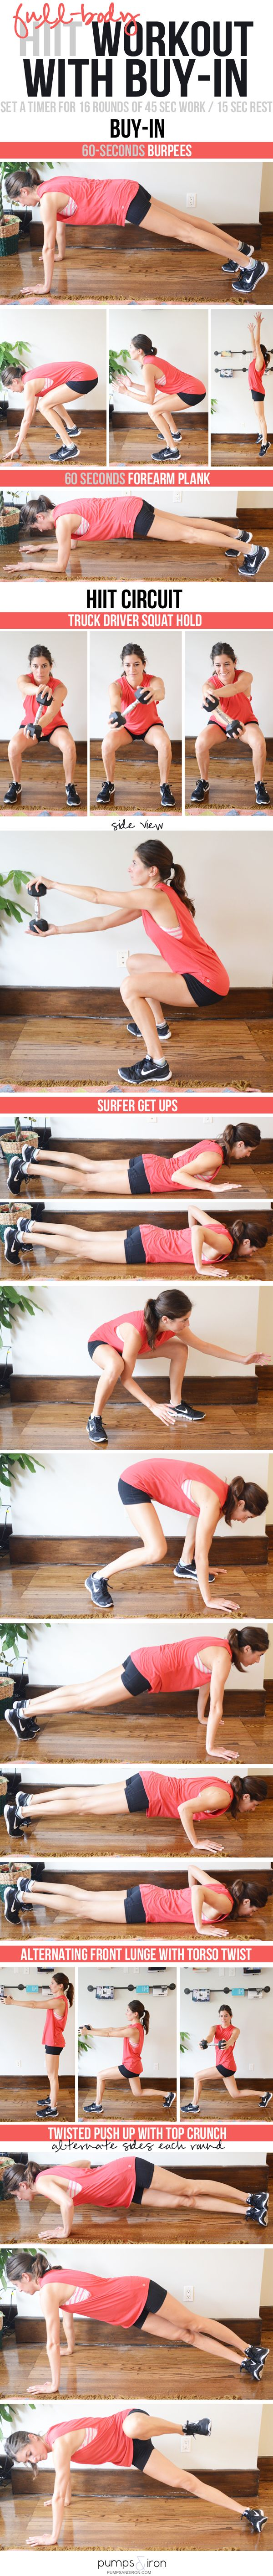 Full-Body HIIT Circuit Workout with a Buy-In   You'll just need one medium dumbbell or medicine ball